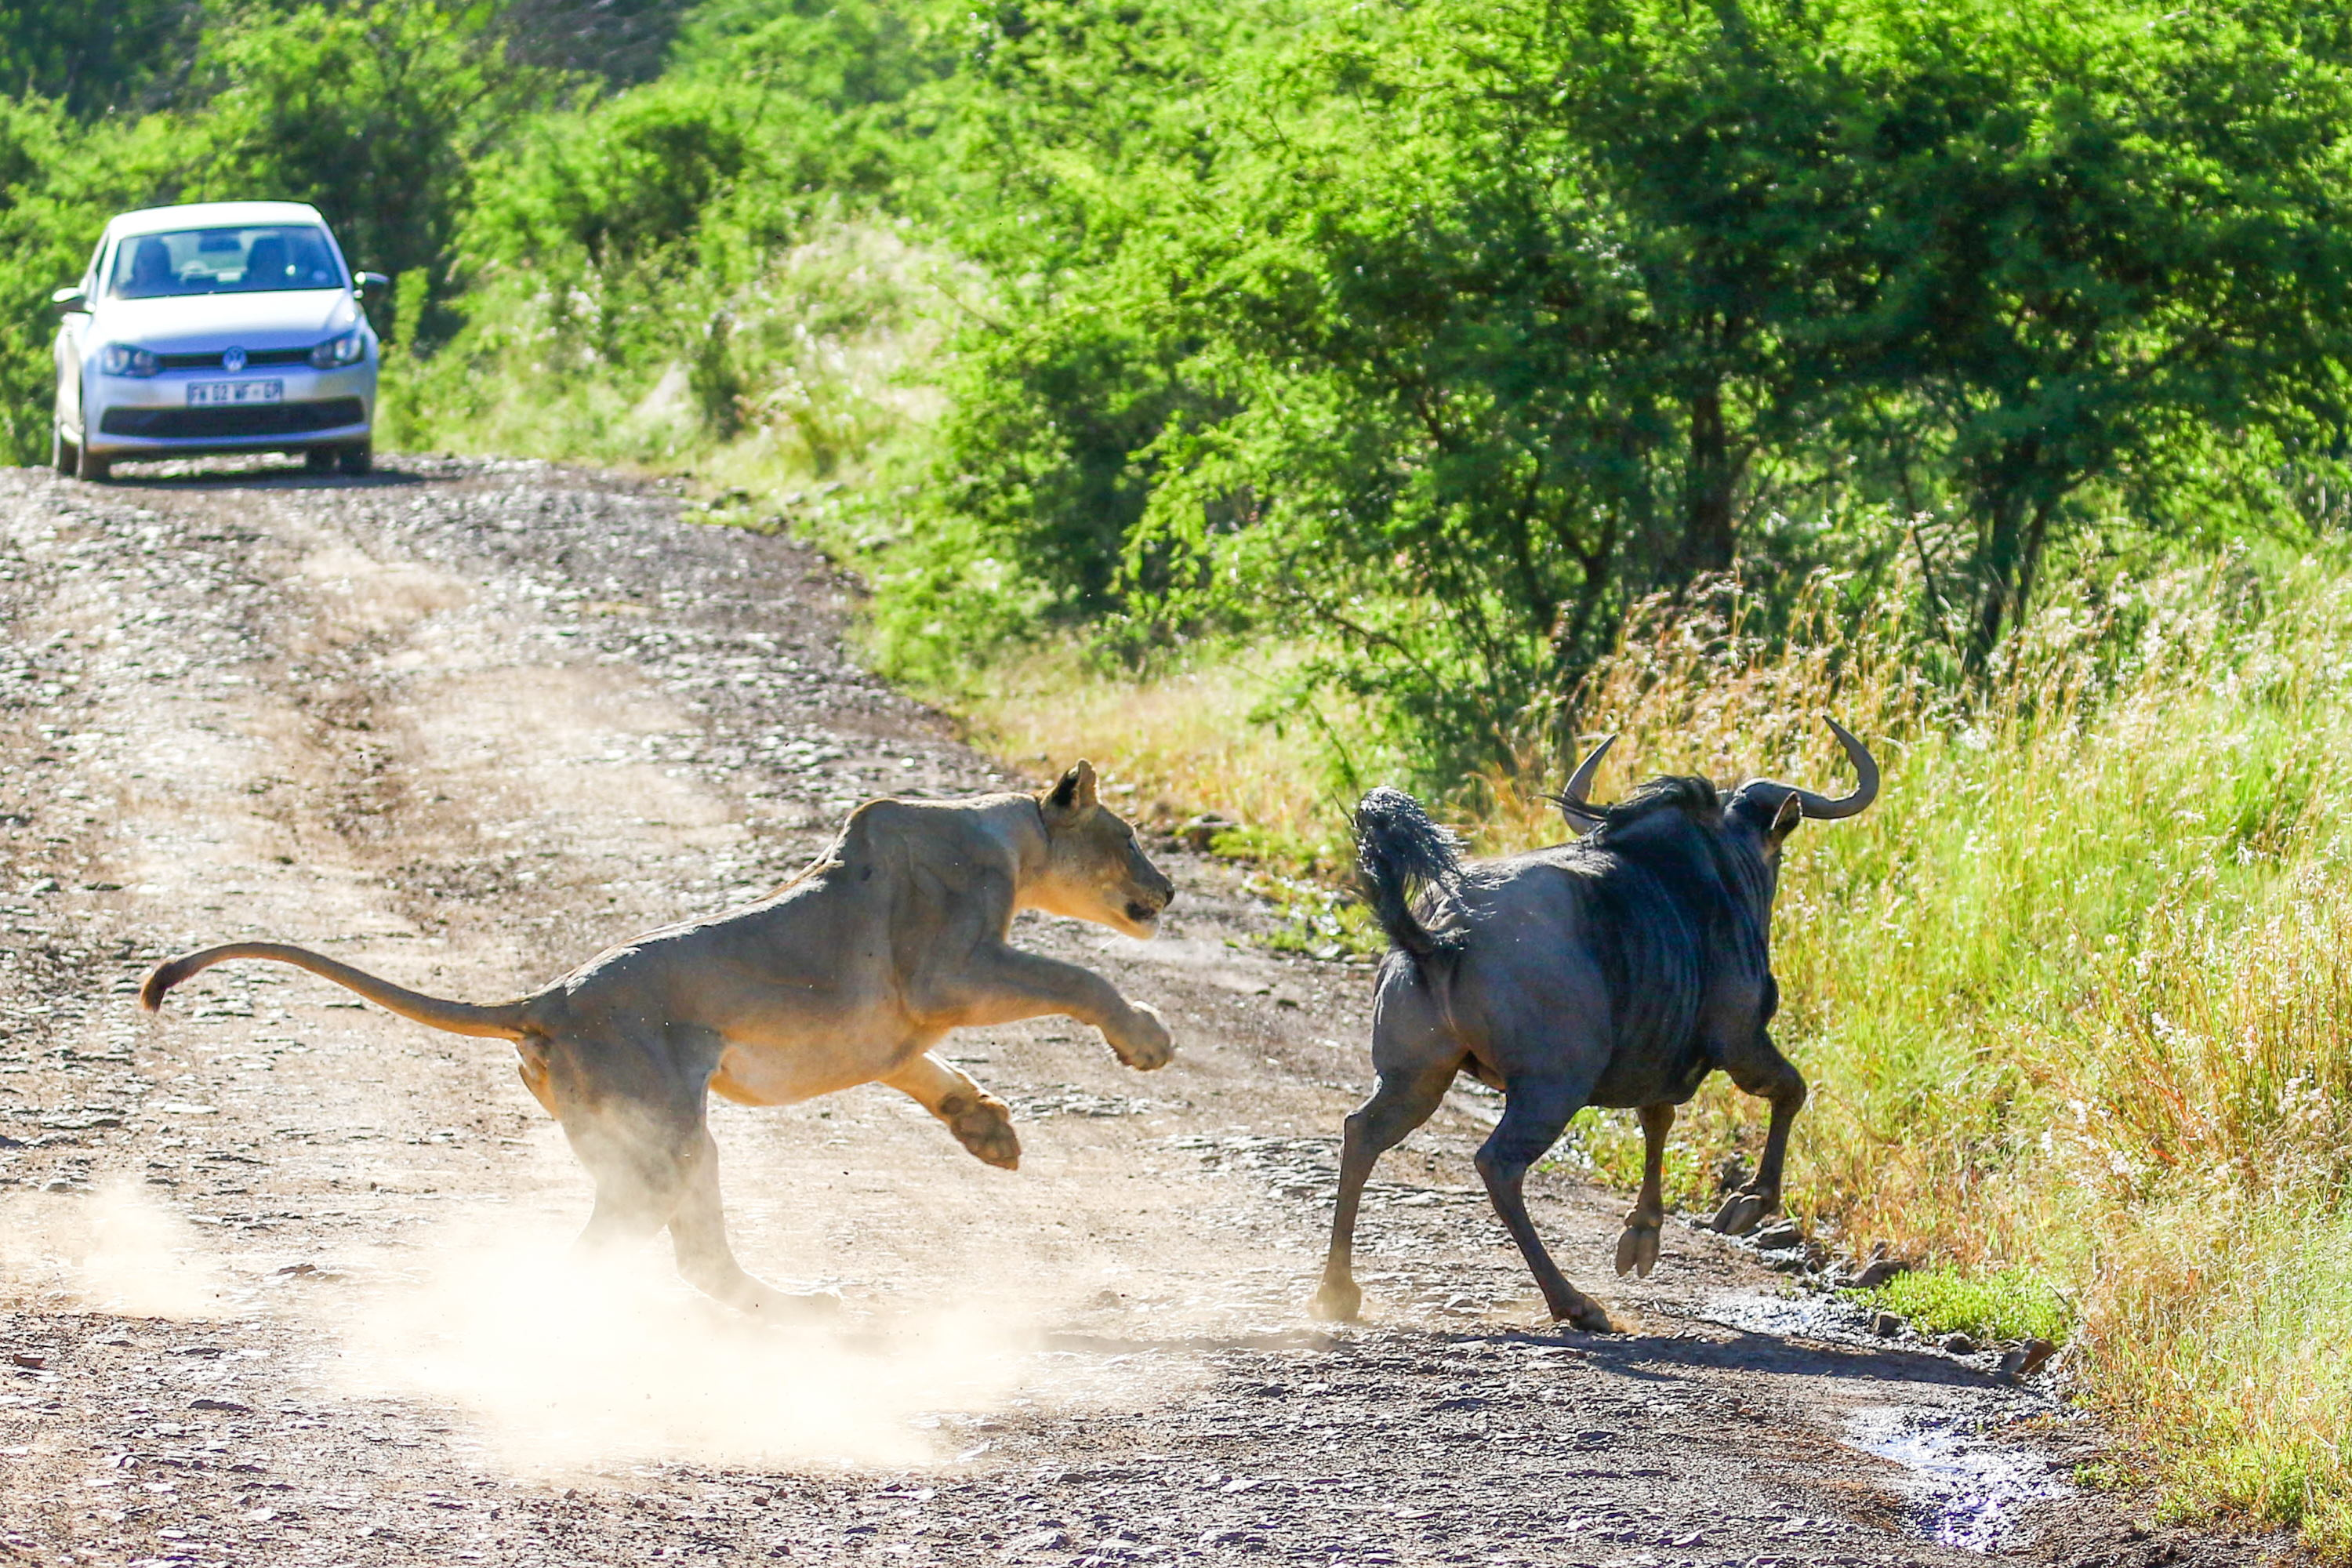 Lion hunting wildebeest - frame 3 (Photo by Derek Ho)